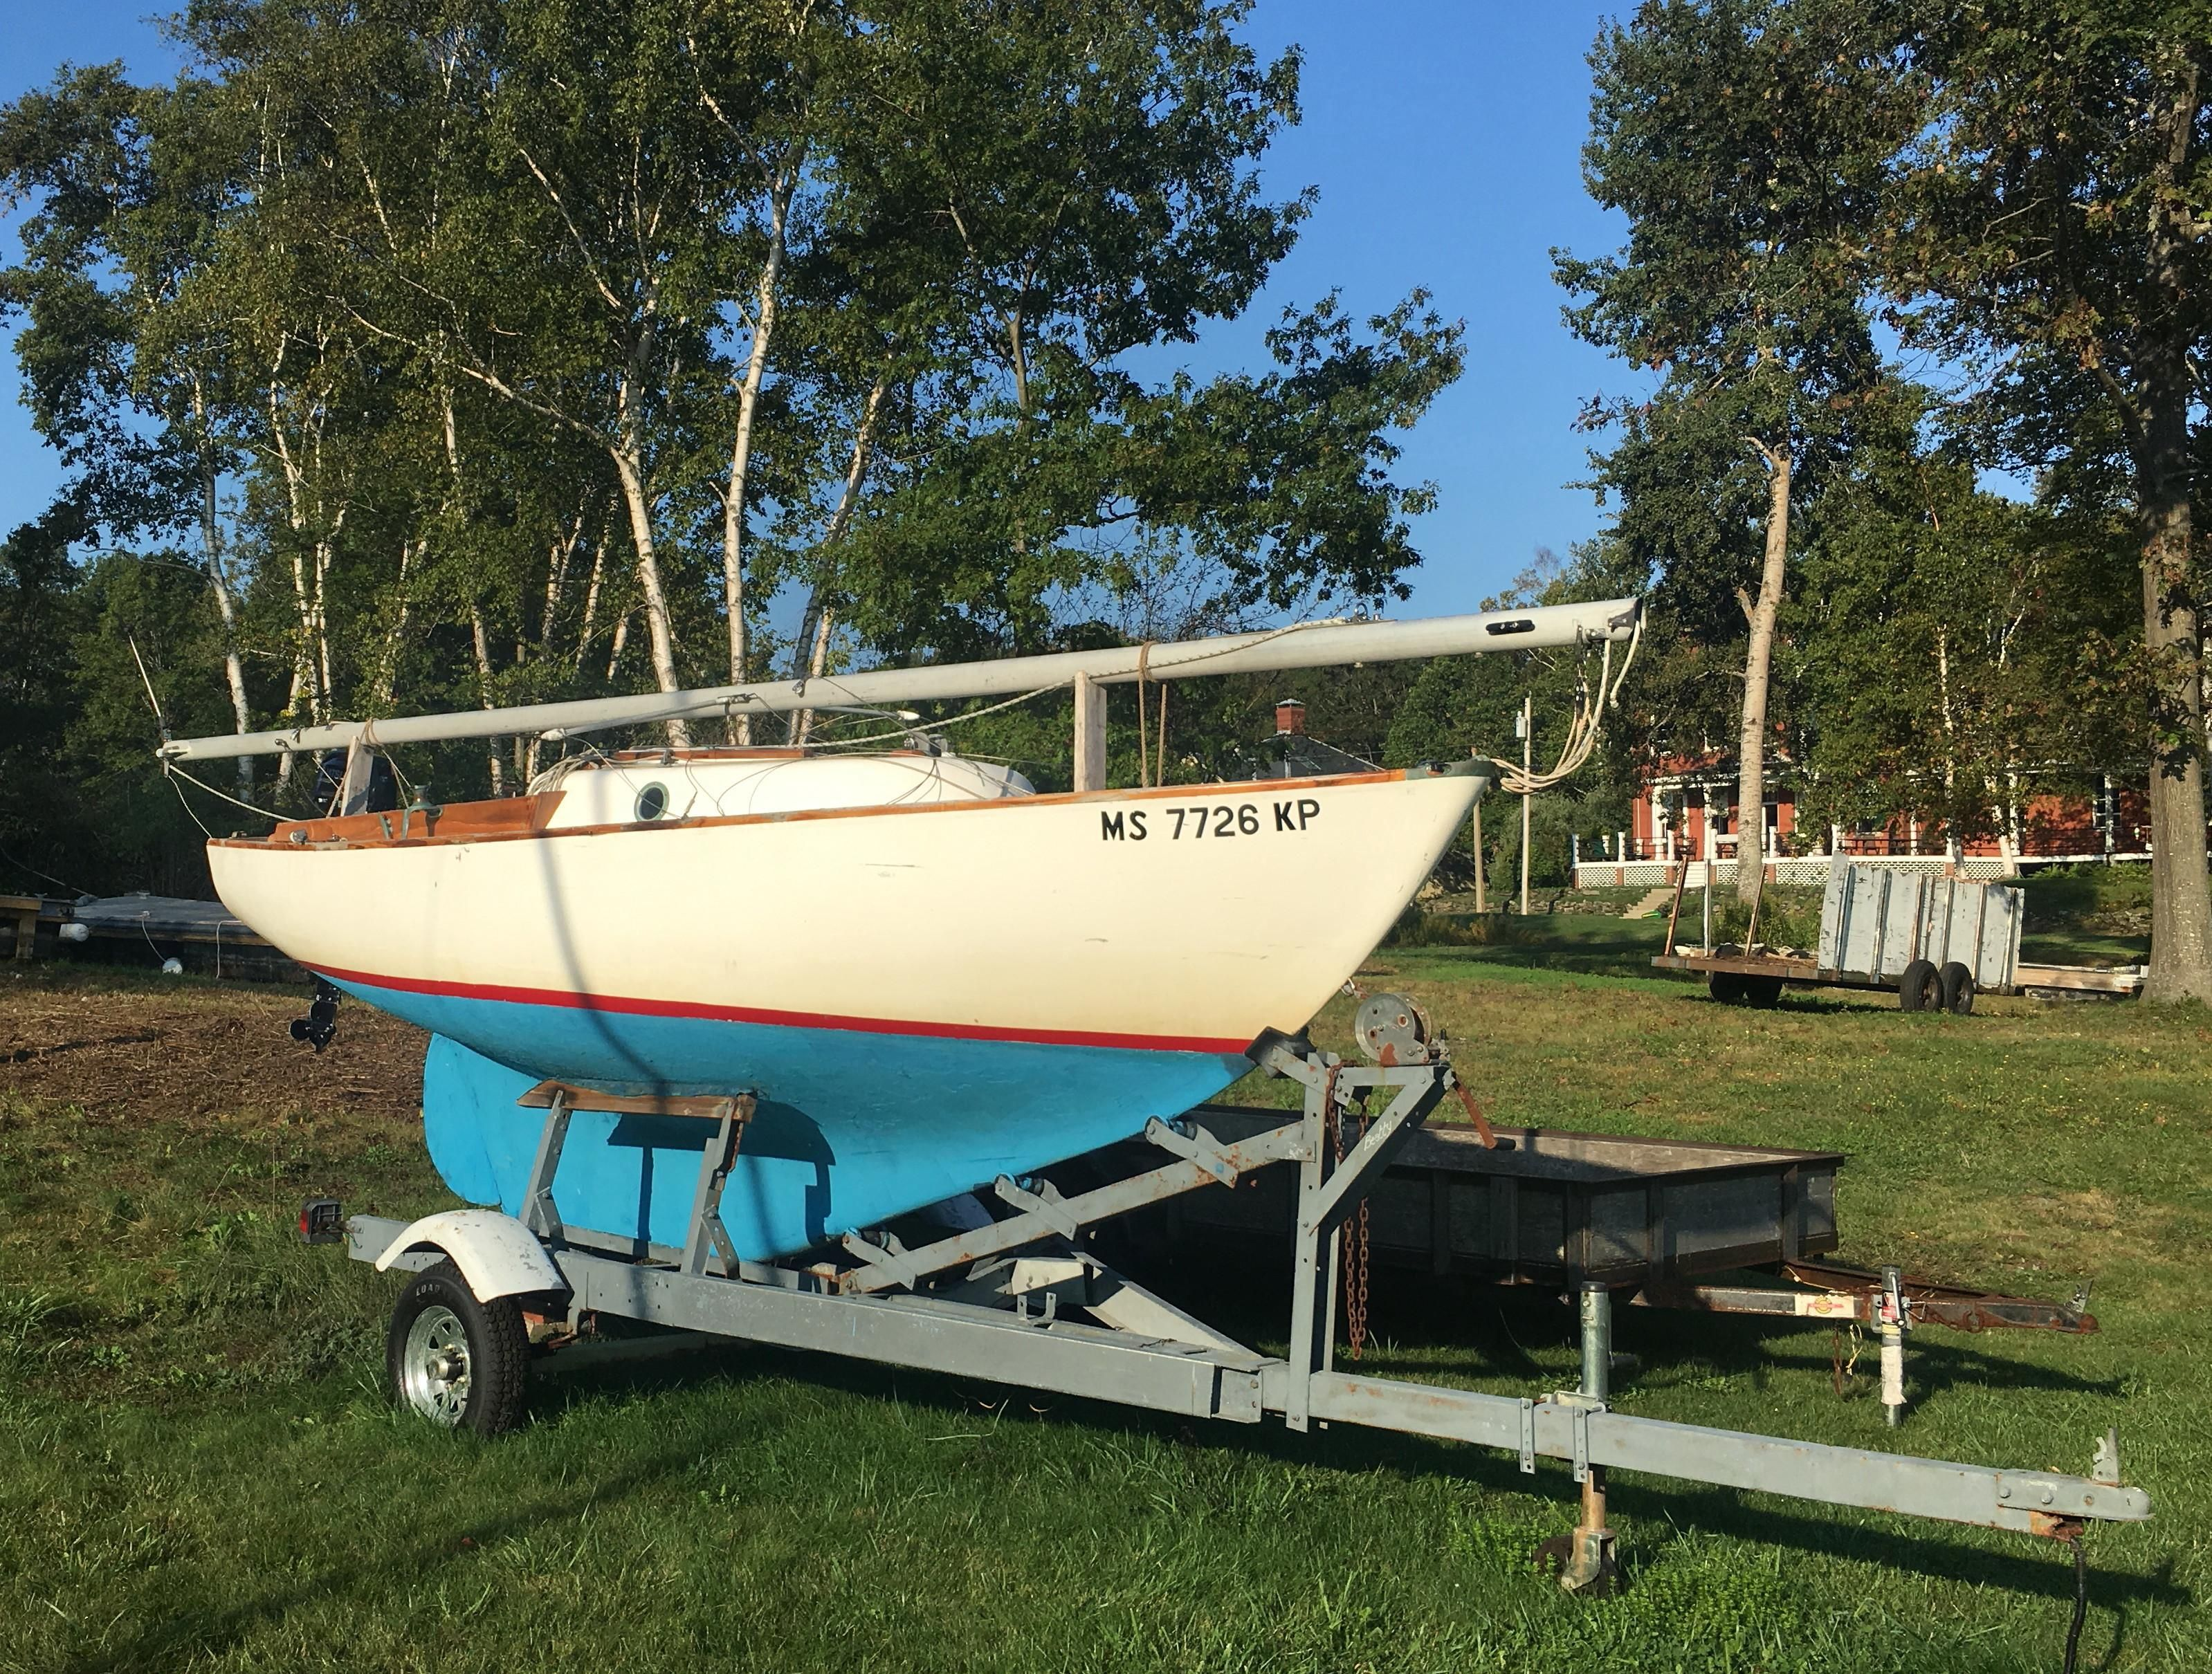 Cape Dory Typhoon >> 1976 Cape Dory Typhoon, trailer, updates Sail Boat For Sale - www.yachtworld.com